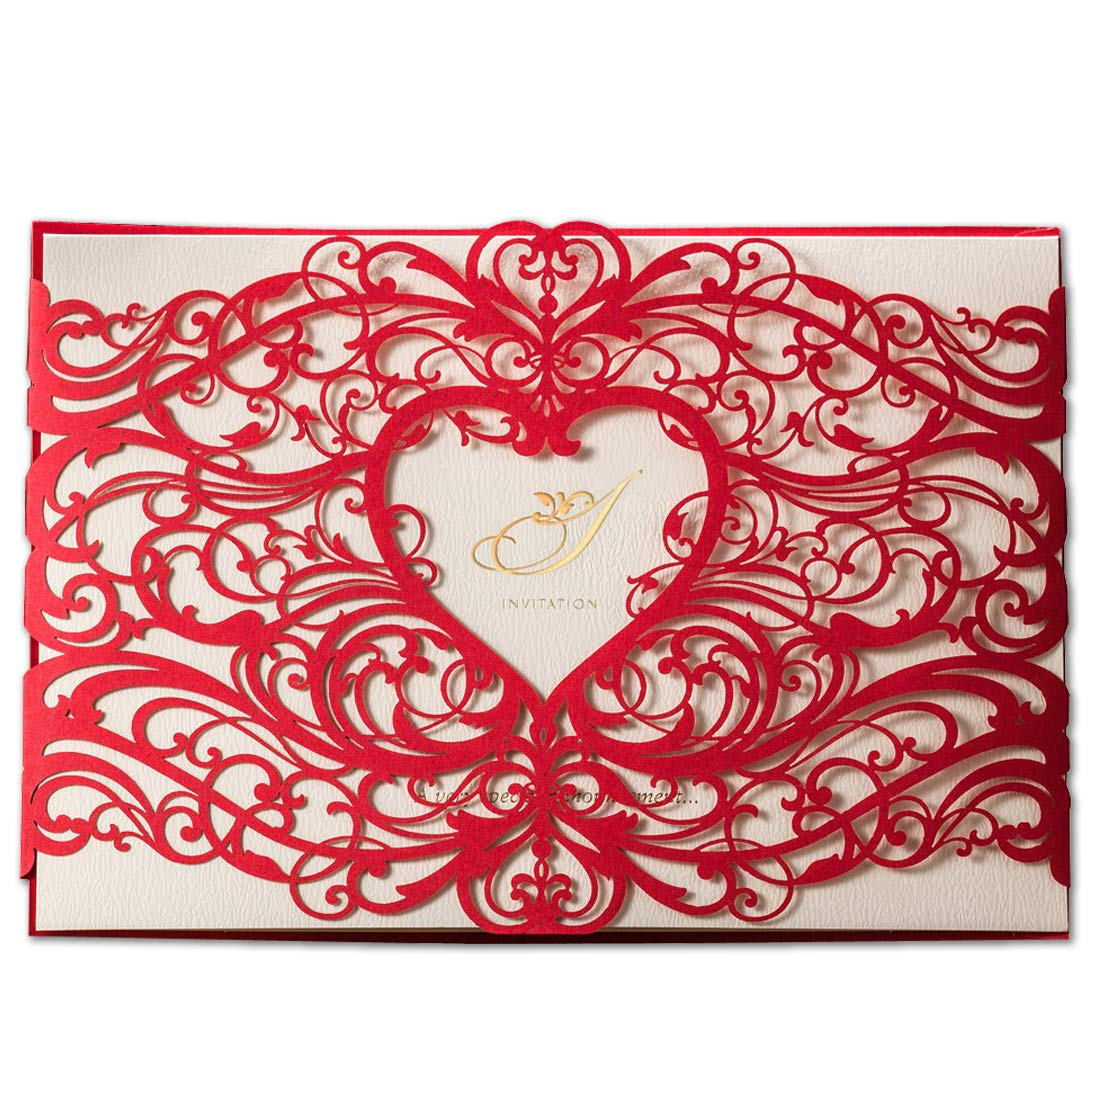 50X WISHMADE Laser Cut Wedding Invitations Cards Kits with Red ...